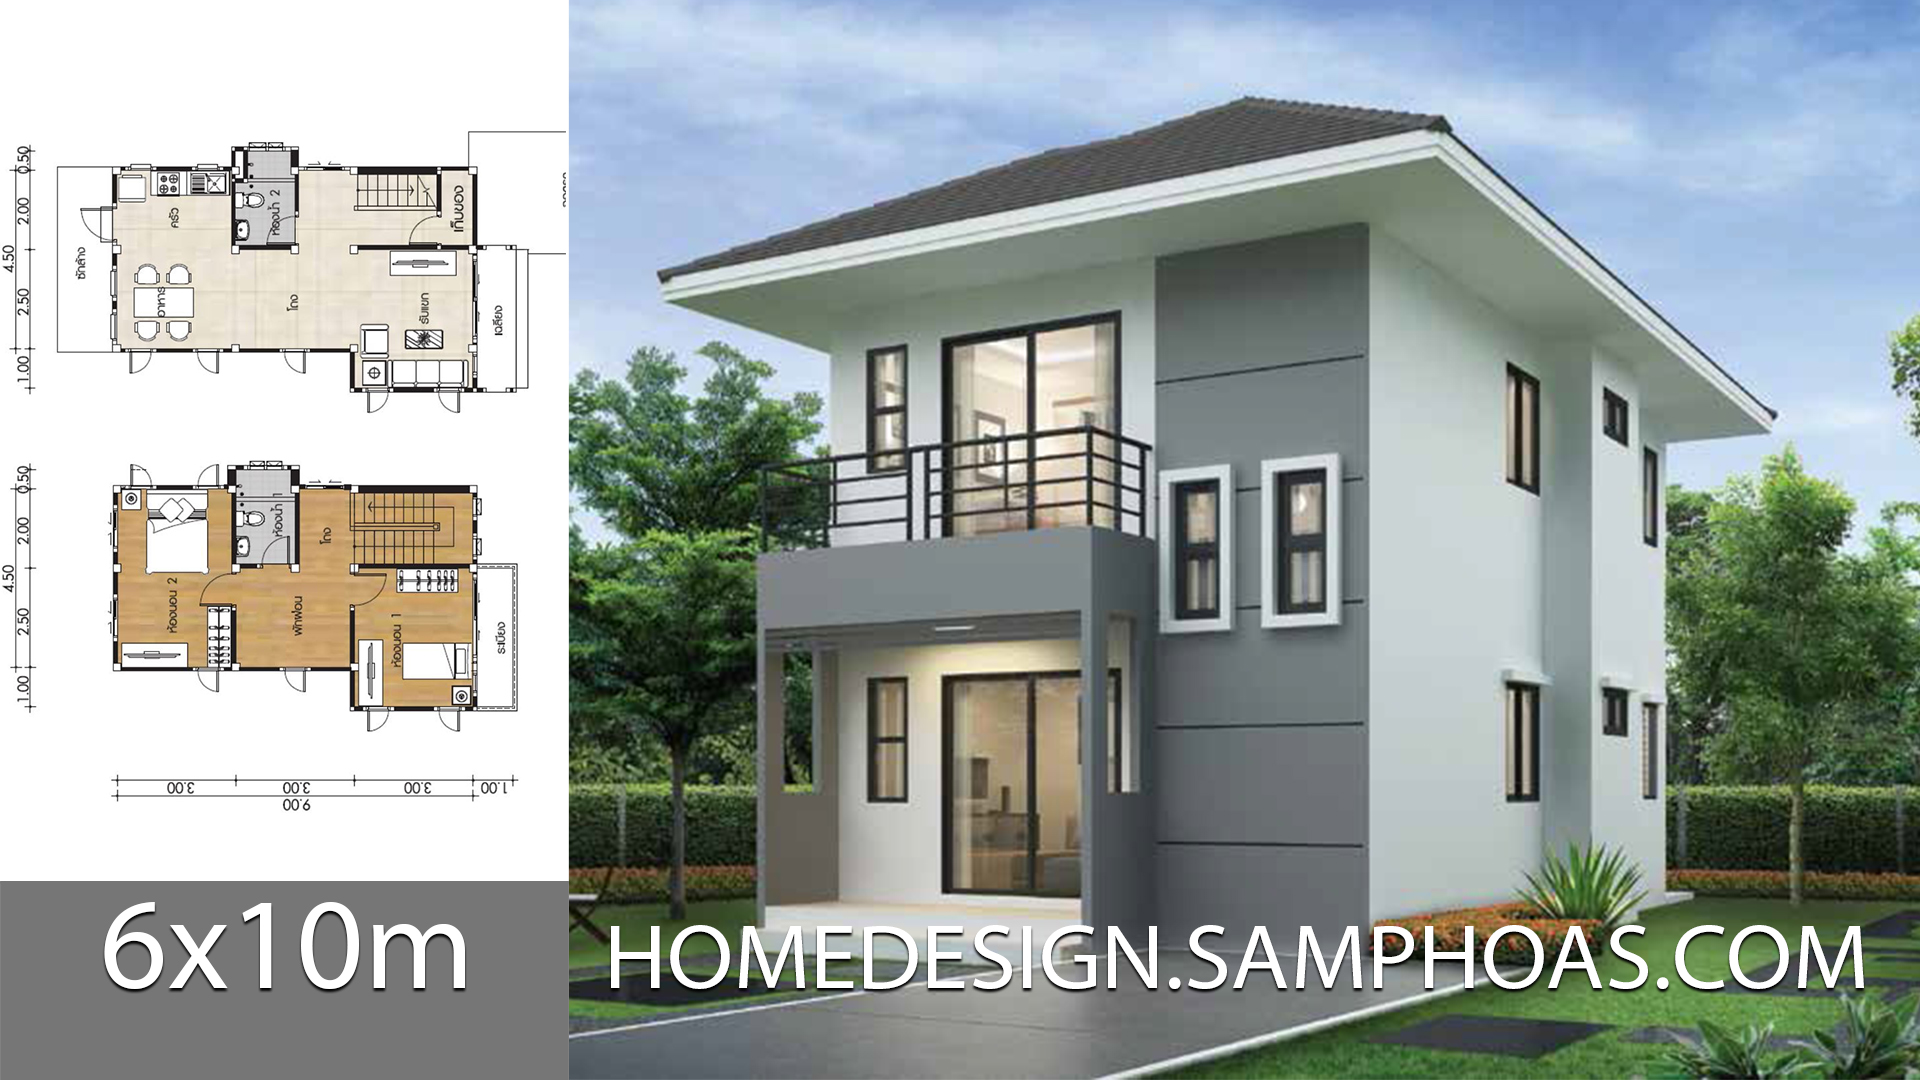 Small Home design Plans 6x10m with 2 Bedrooms - Home Ideas